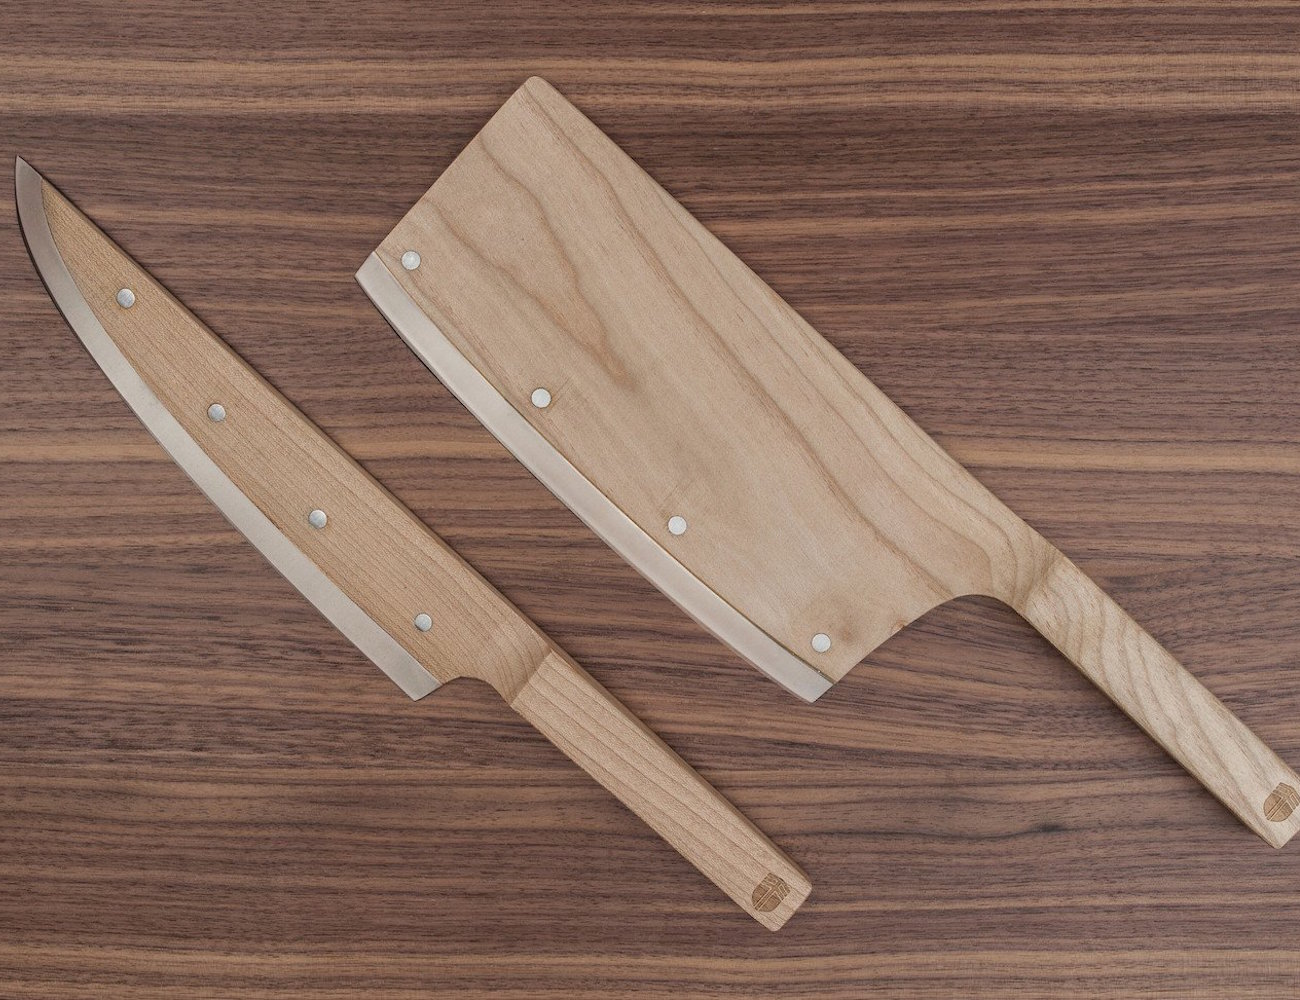 maple knife set kitchen knives with a new perspective review 1